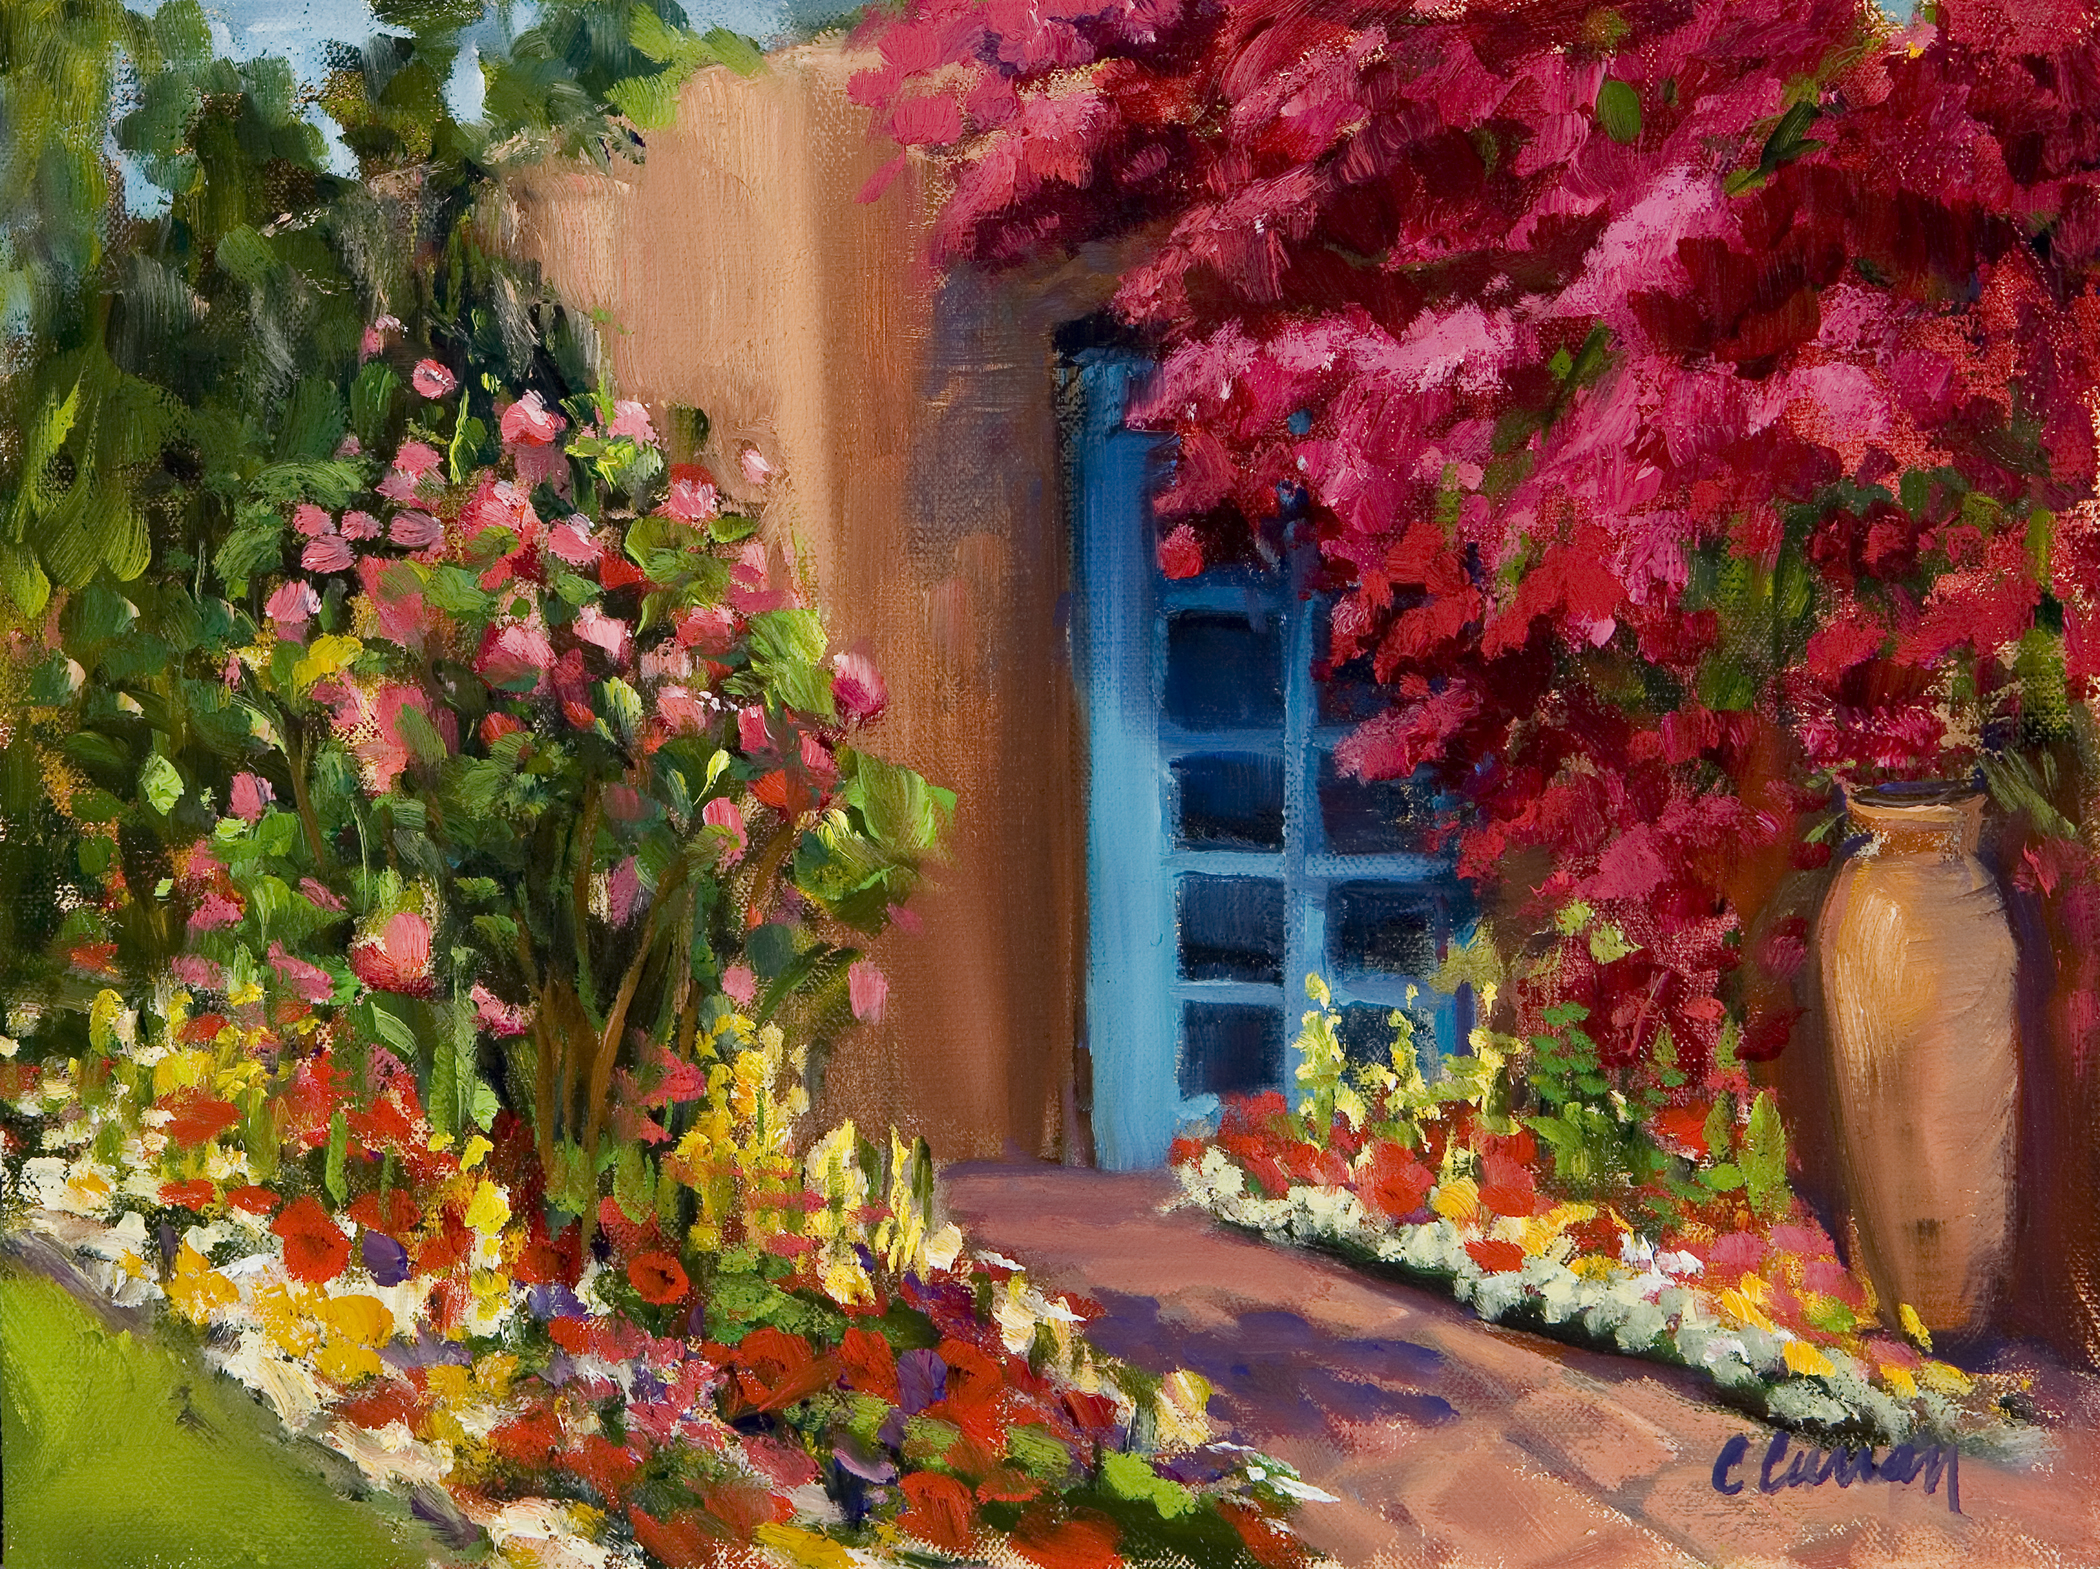 THE BOUGAINVILLEA AT THE HERMOSA   9X10, OIL ON LINEN